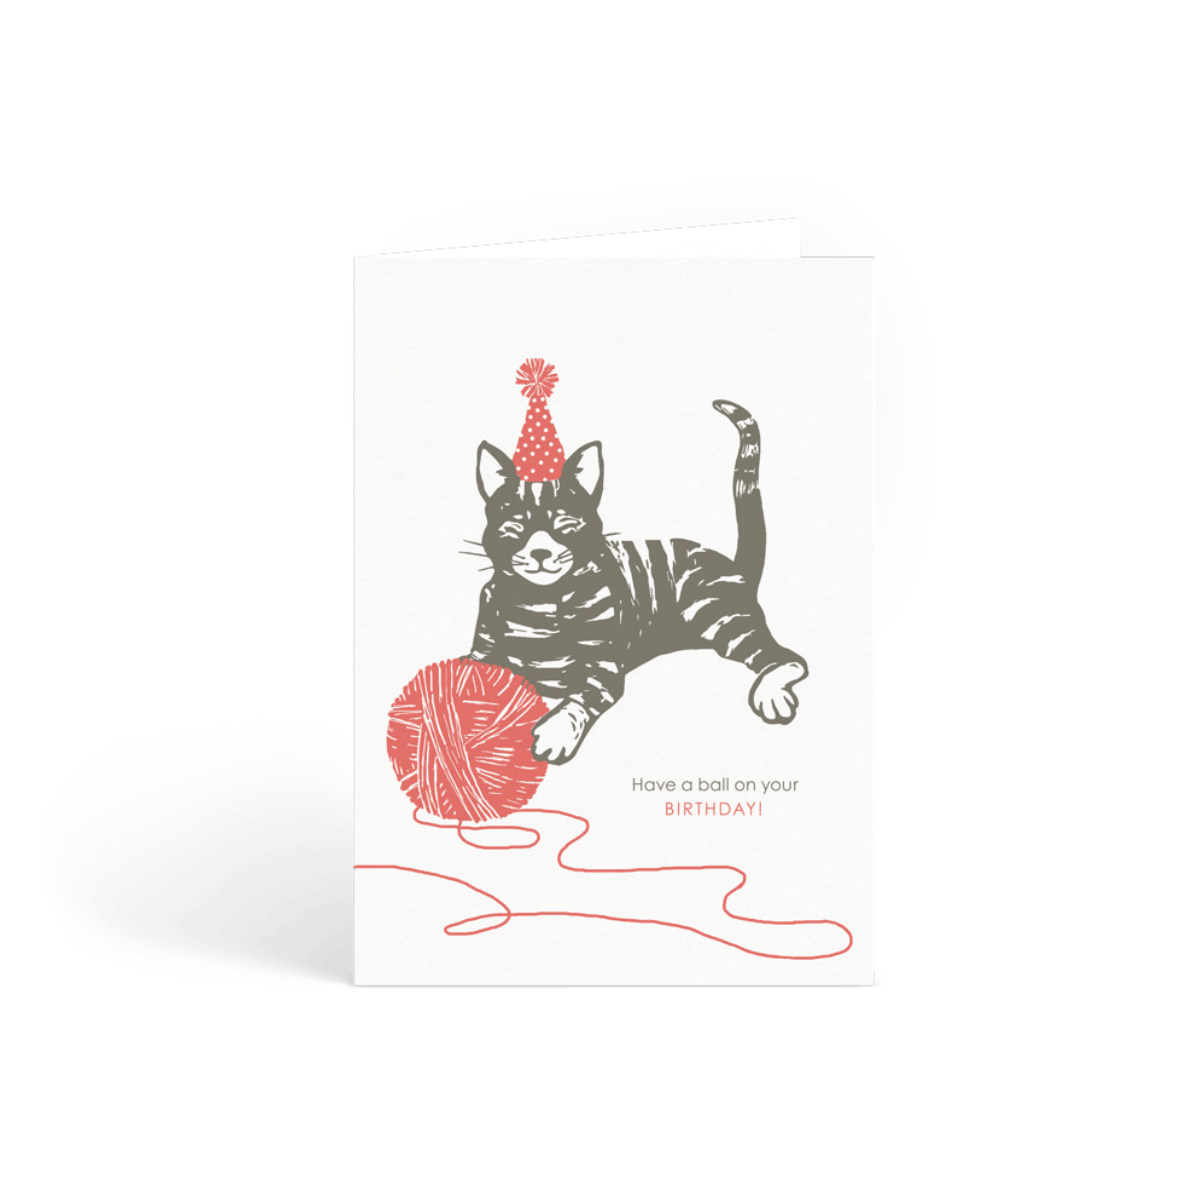 Https%3a%2f%2fwww.papier.com%2fproduct image%2f3477%2f2%2fbirthday kitten 930 front 1453910840.png?ixlib=rb 1.1